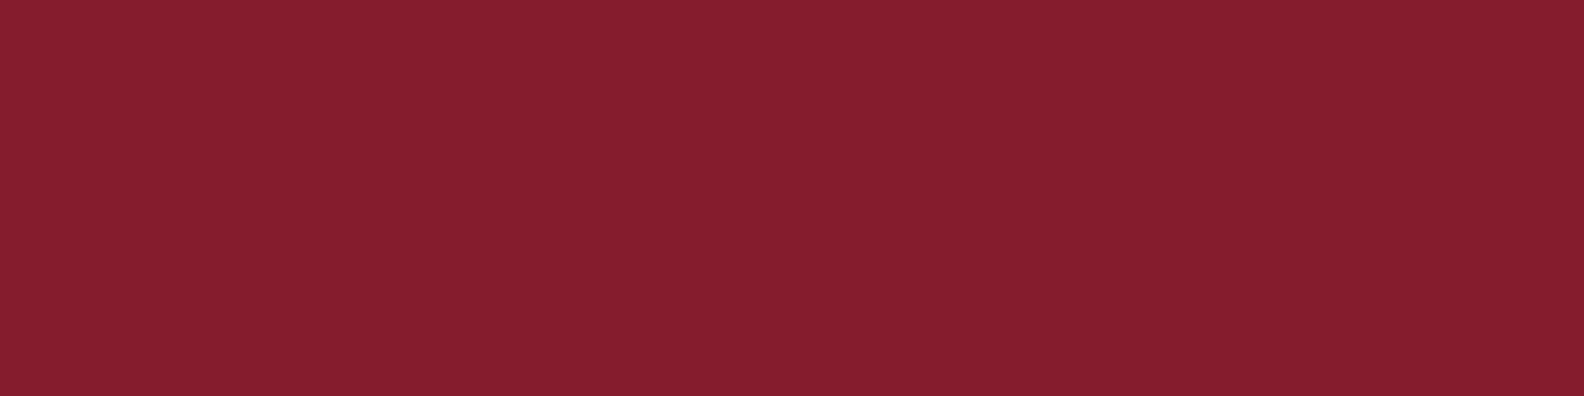 1584x396 Antique Ruby Solid Color Background